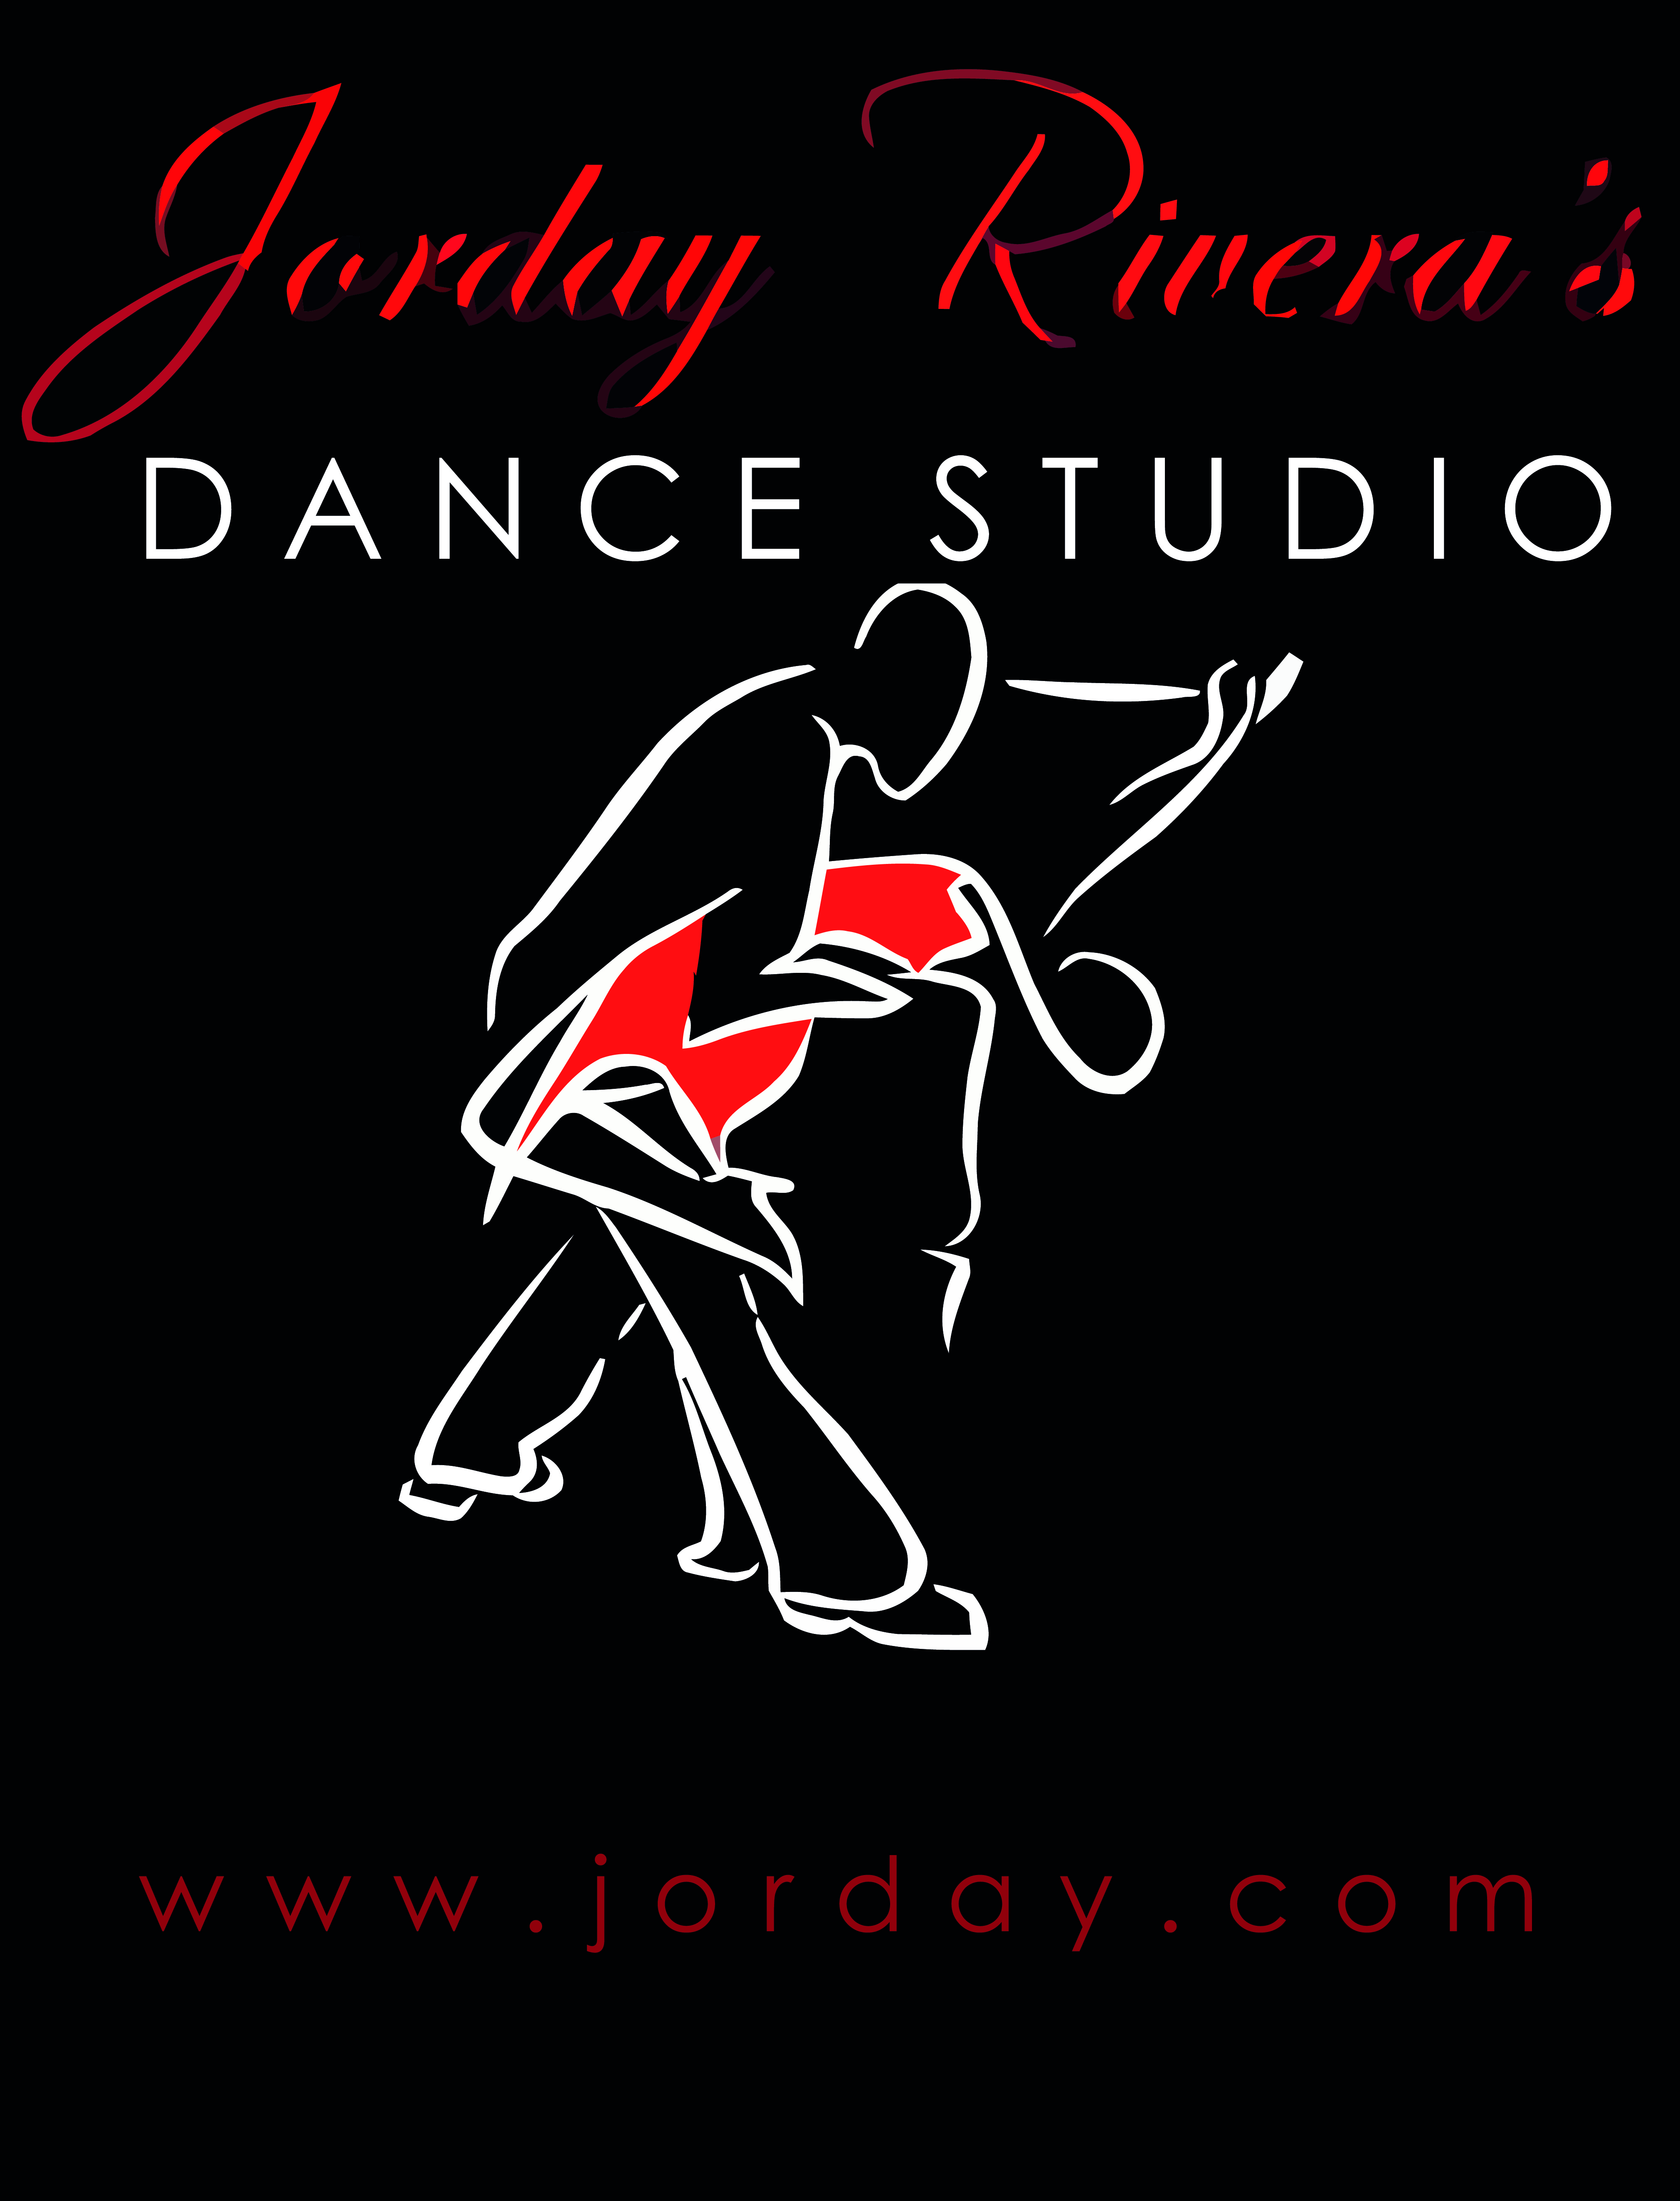 Jorday Rivera's Dance Studio